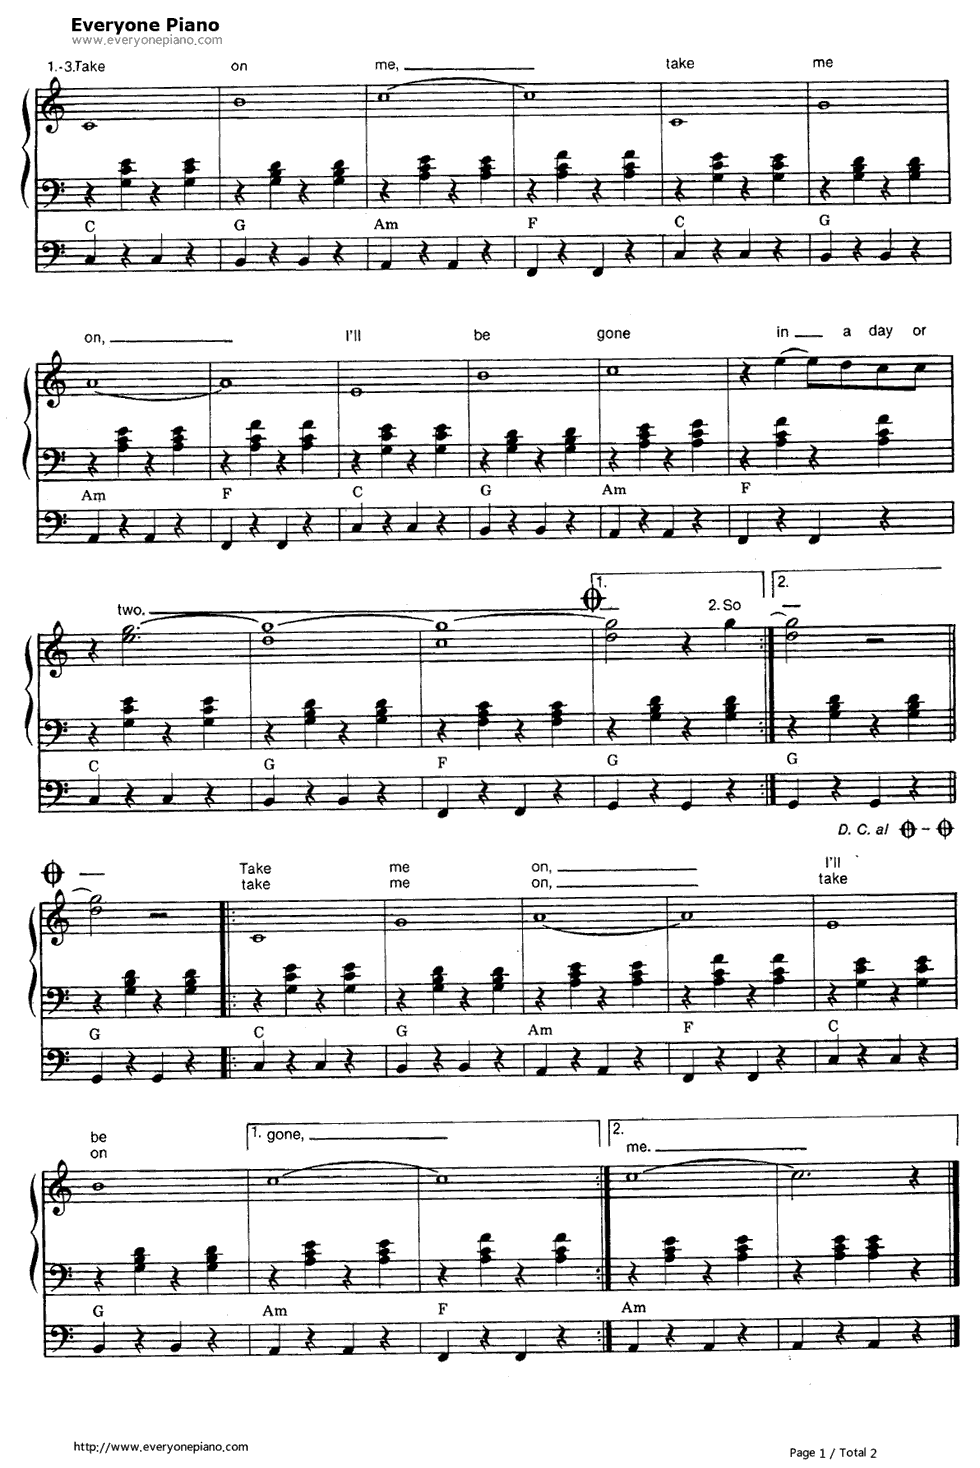 Take on me a ha stave preview 2 free piano sheet music piano chords listen now print sheet take on me a ha stave preview 2 hexwebz Images